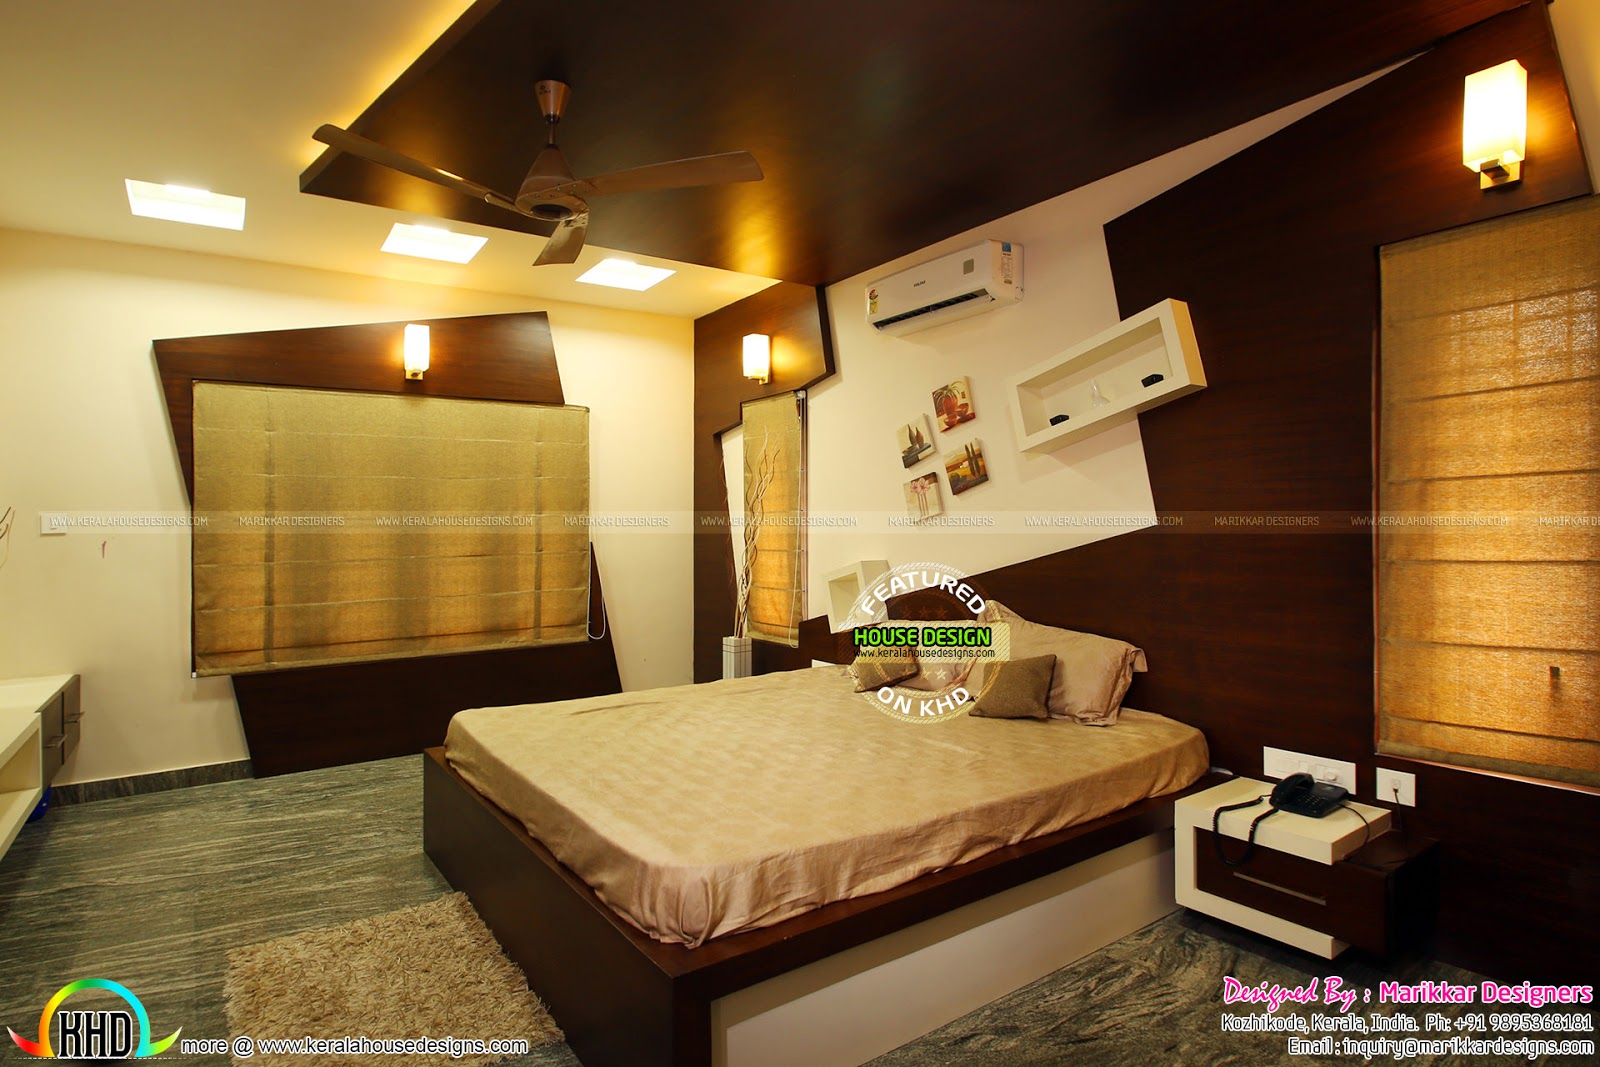 Fully Furnished House In Kerala Kerala Home Design And